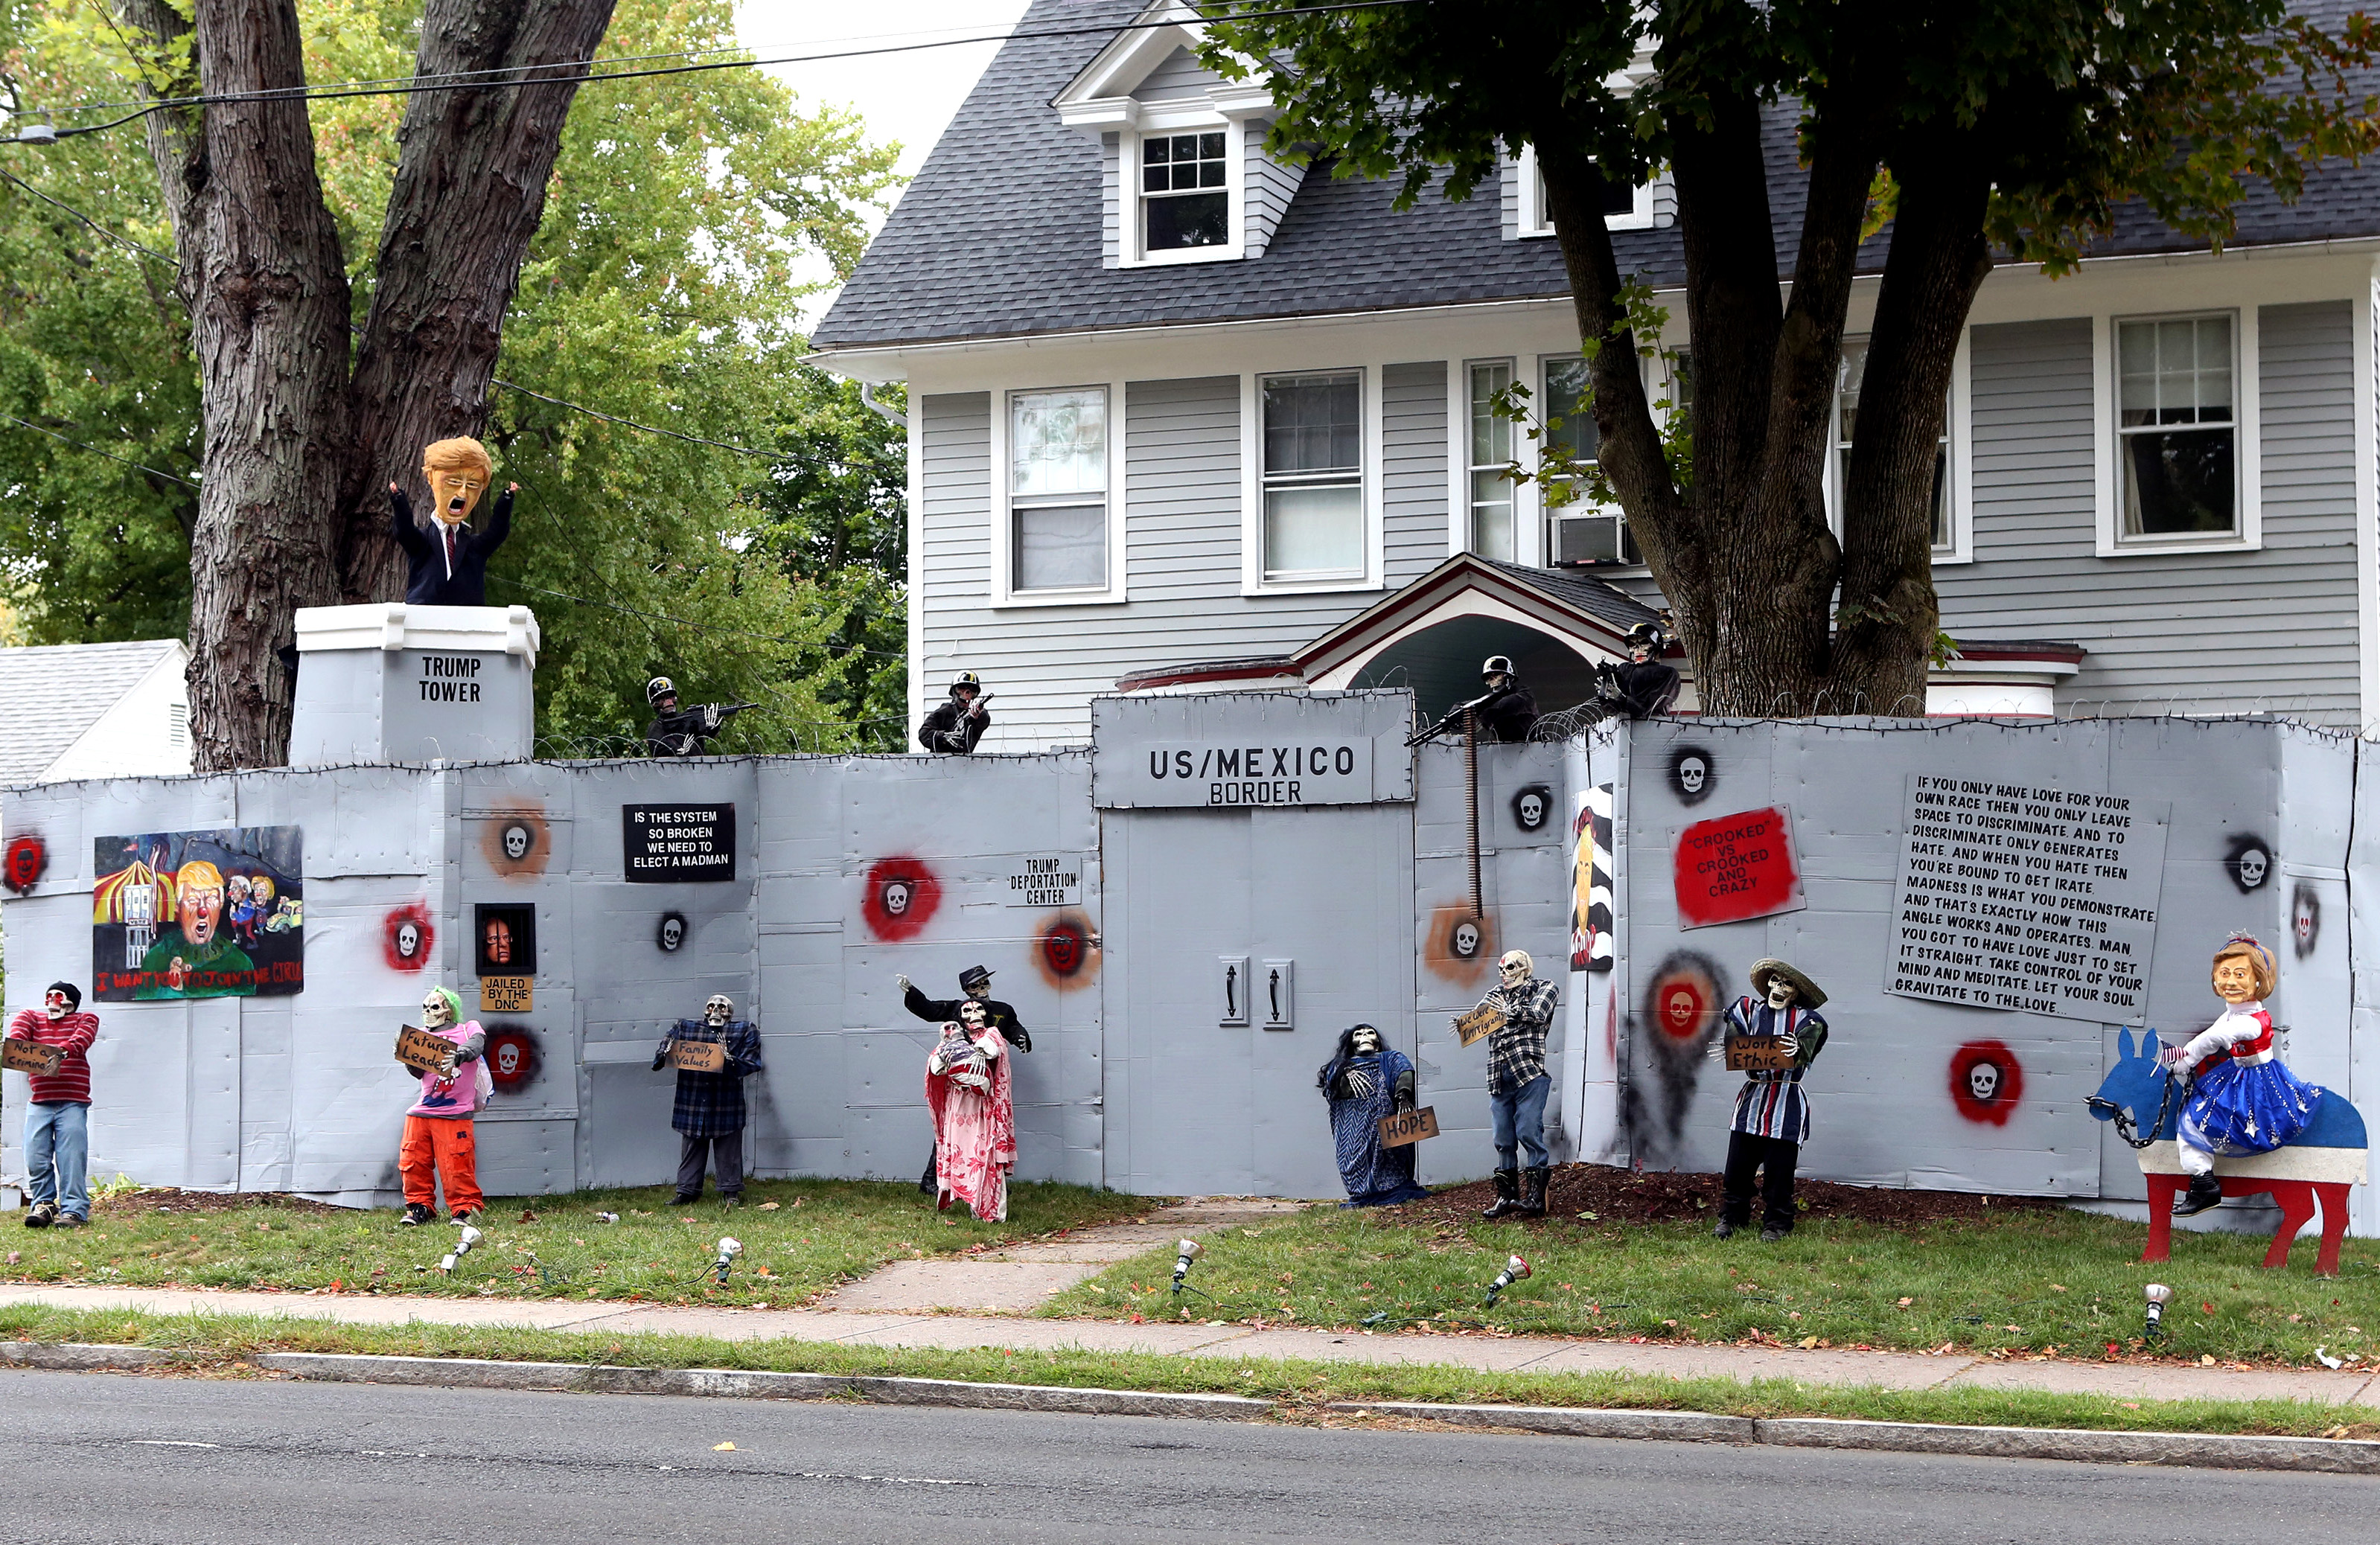 A display features a  border wall  and figures in the likeness of Donald Trump, Hillary Clinton and Bernie Sanders on the property of Matt Warshauer in West Hartford, Conn. on Oct. 4, 2016.